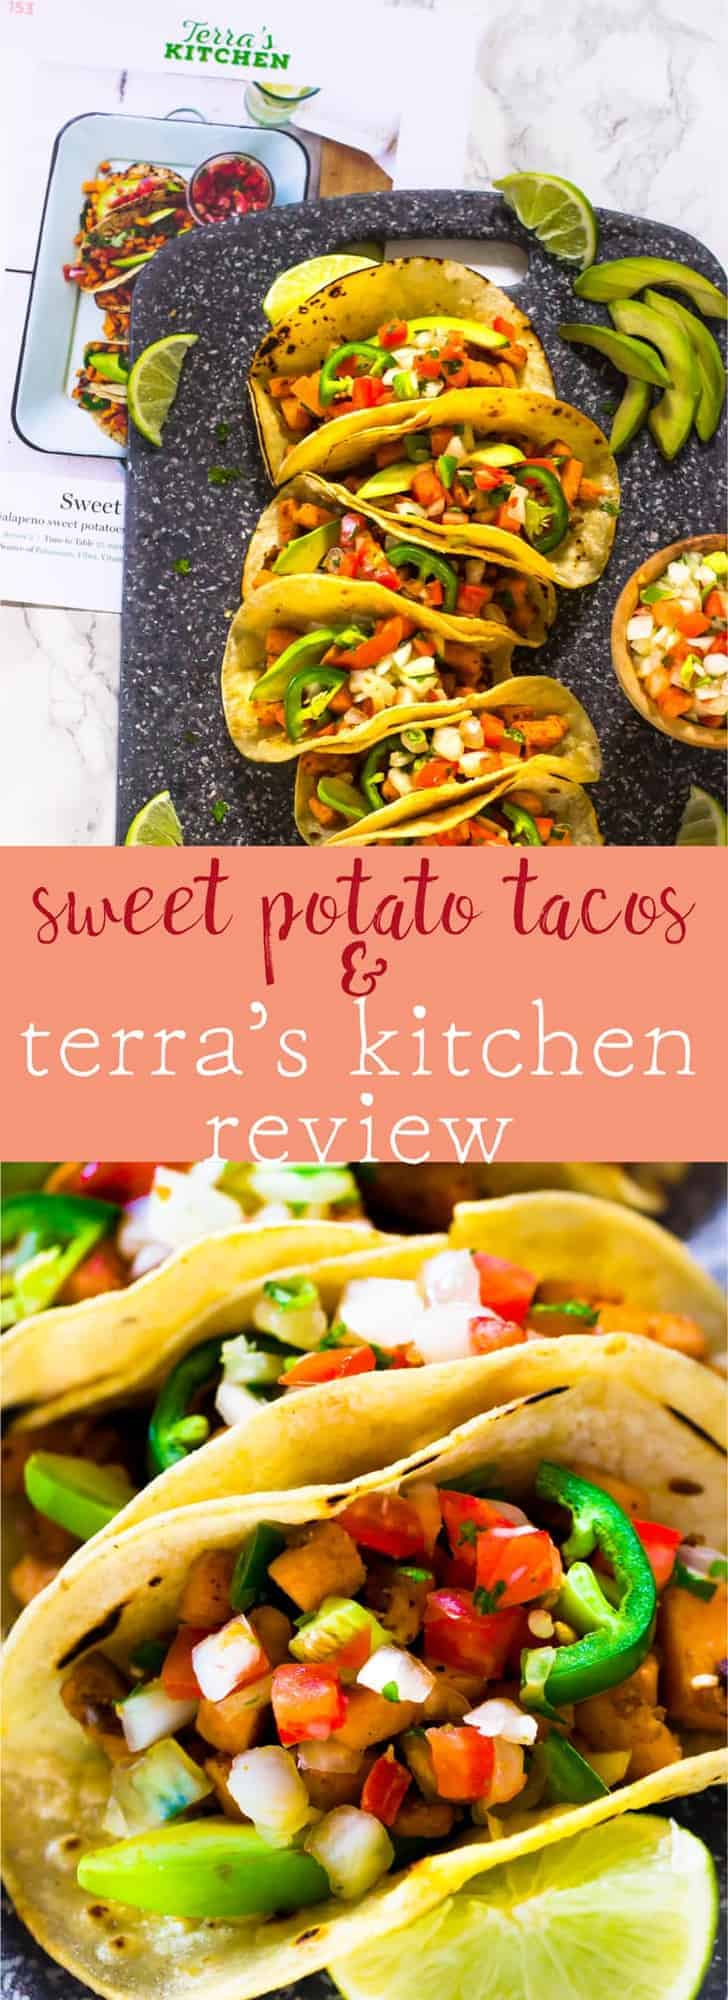 These Vegan Sweet Potato Tacos make a quick and delicious Mexican weeknight dinner. They're done in just 25 minutes from prep to table thanks to @tkmeals outstanding meal delivery service! via https://jessicainthekitchen.com #TerrasKitchen #TKWay